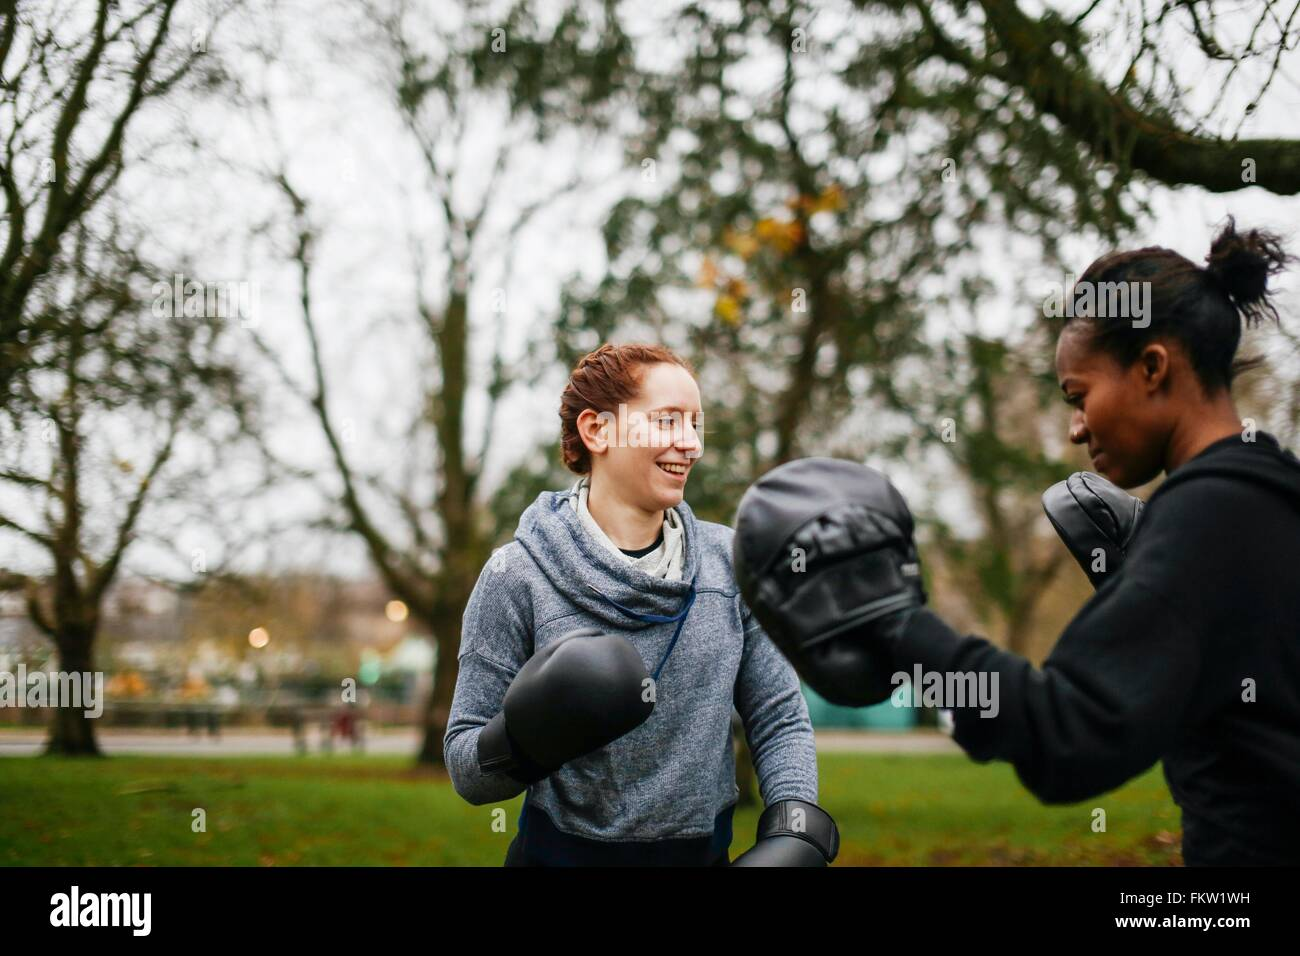 Young adult female boxers training in park - Stock Image